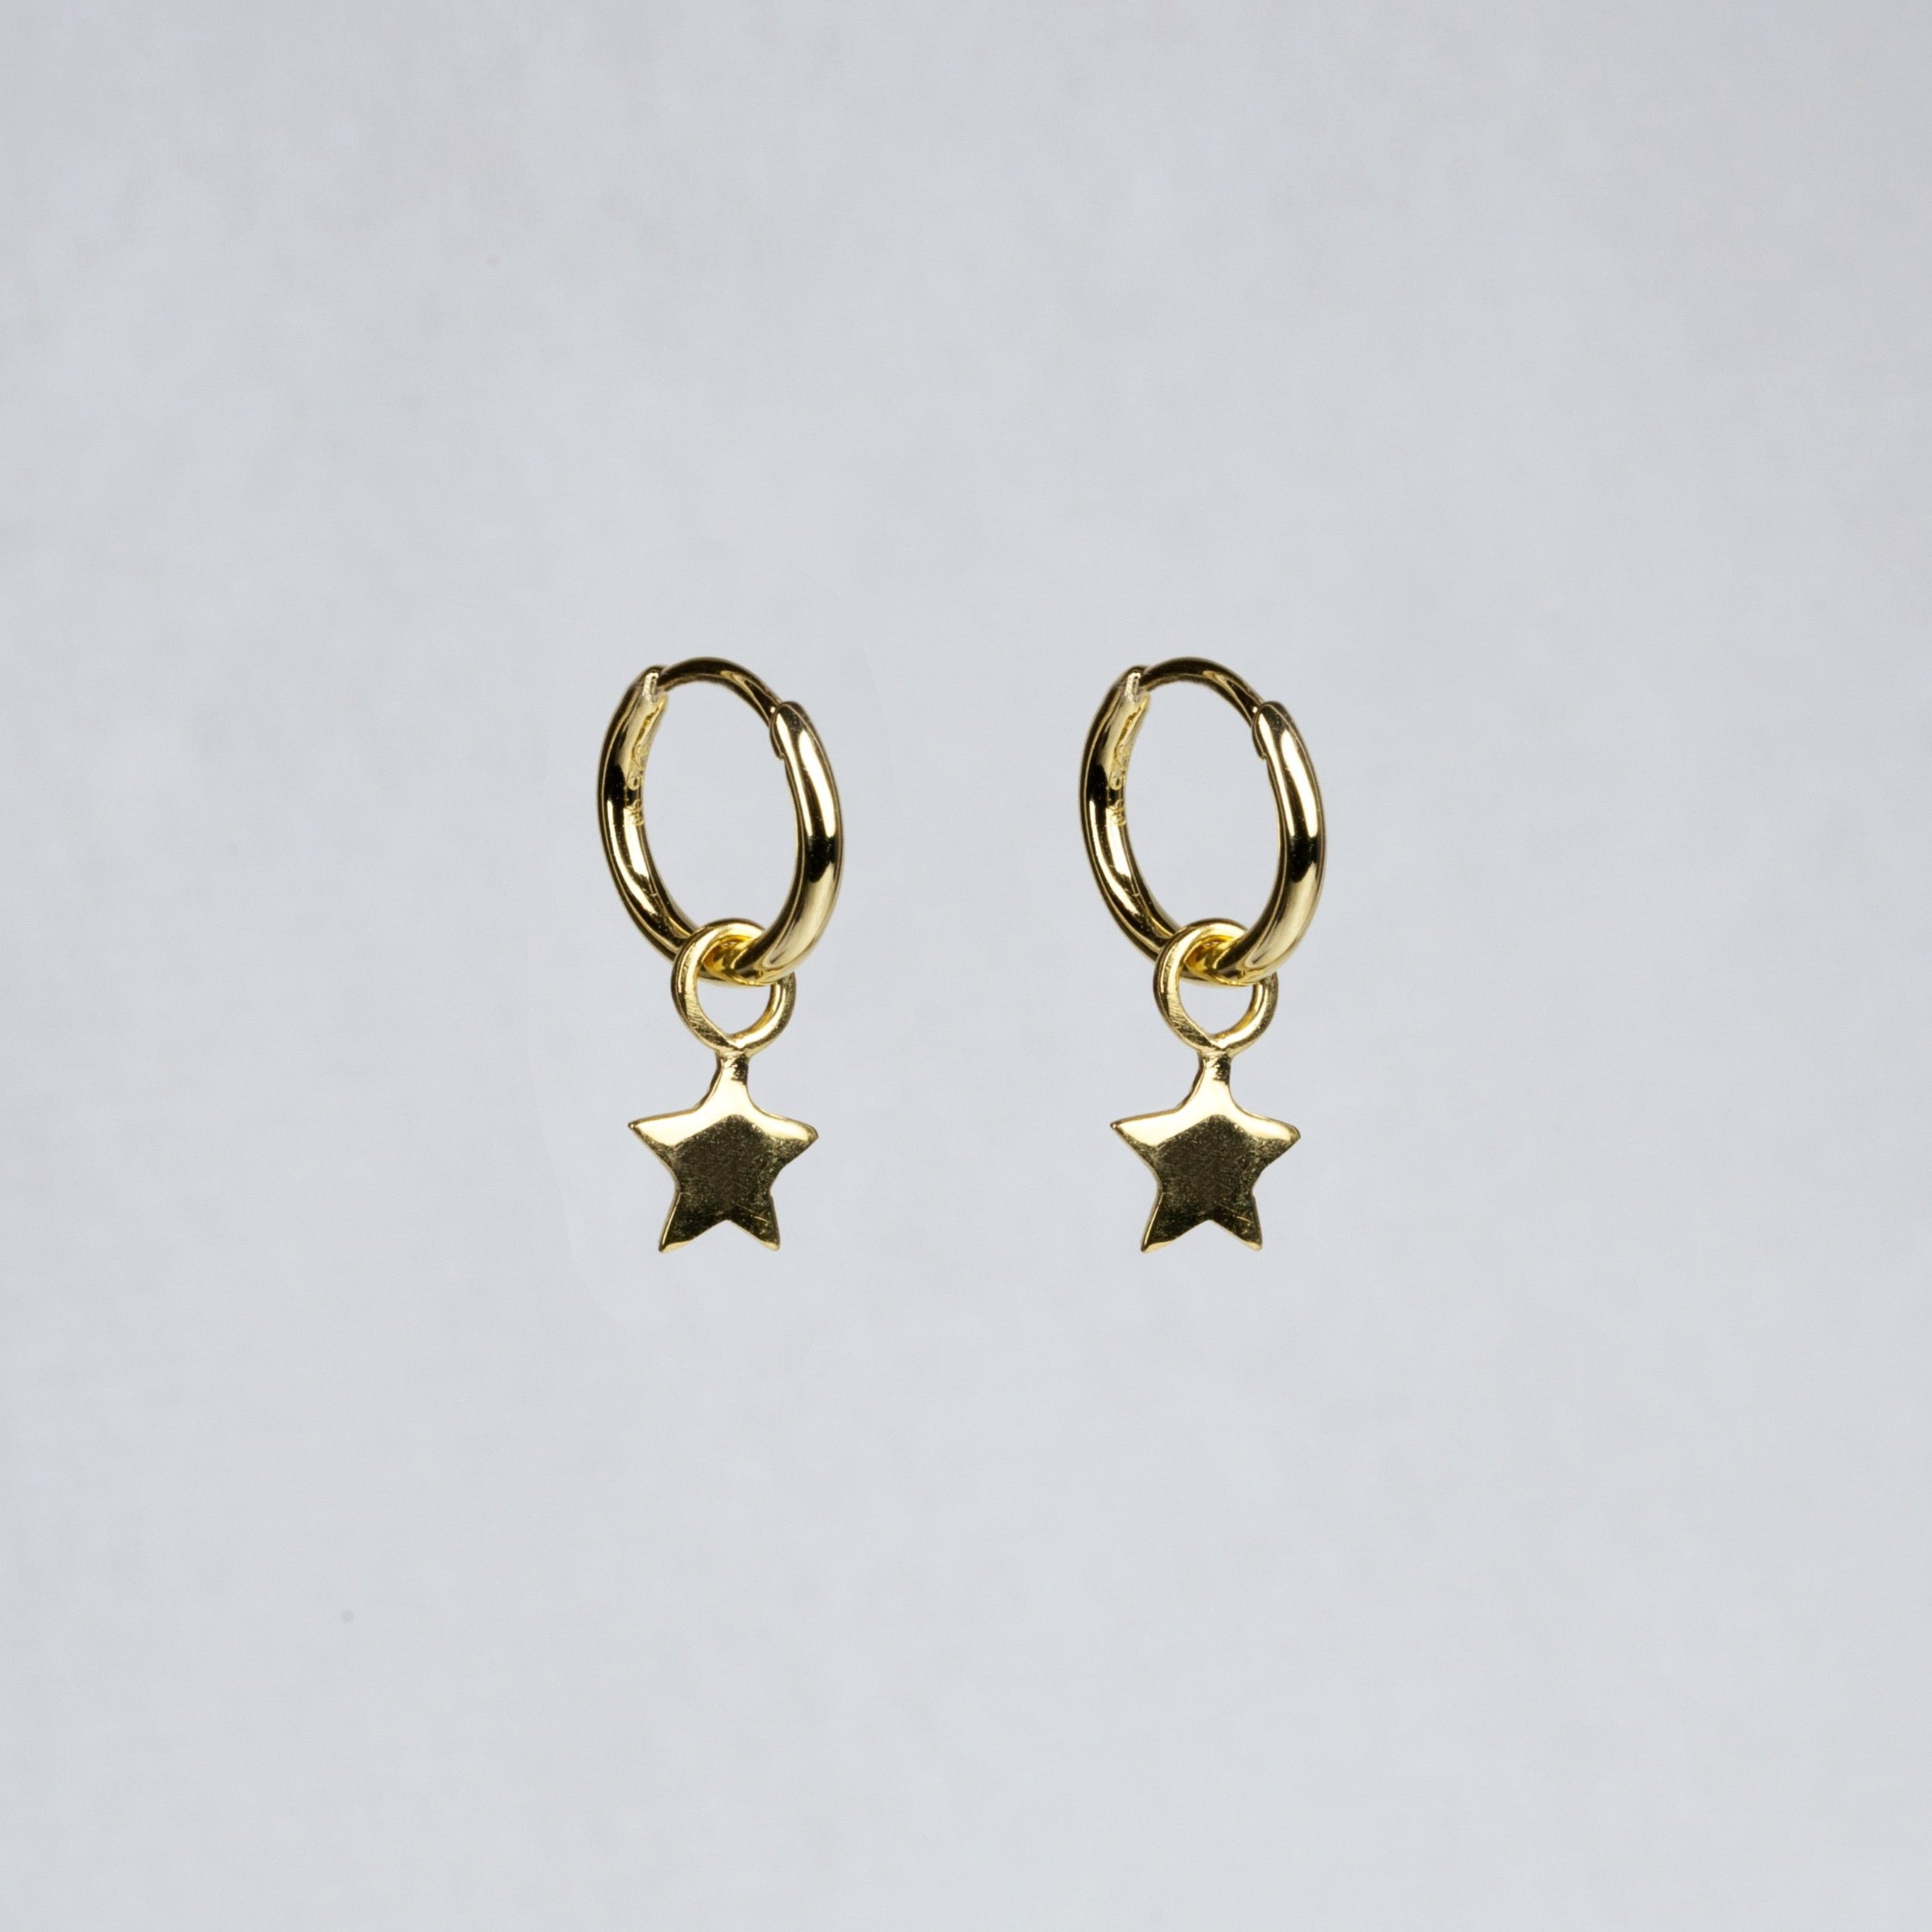 Charmed Hoop Earrings - Stars in Yellow Gold